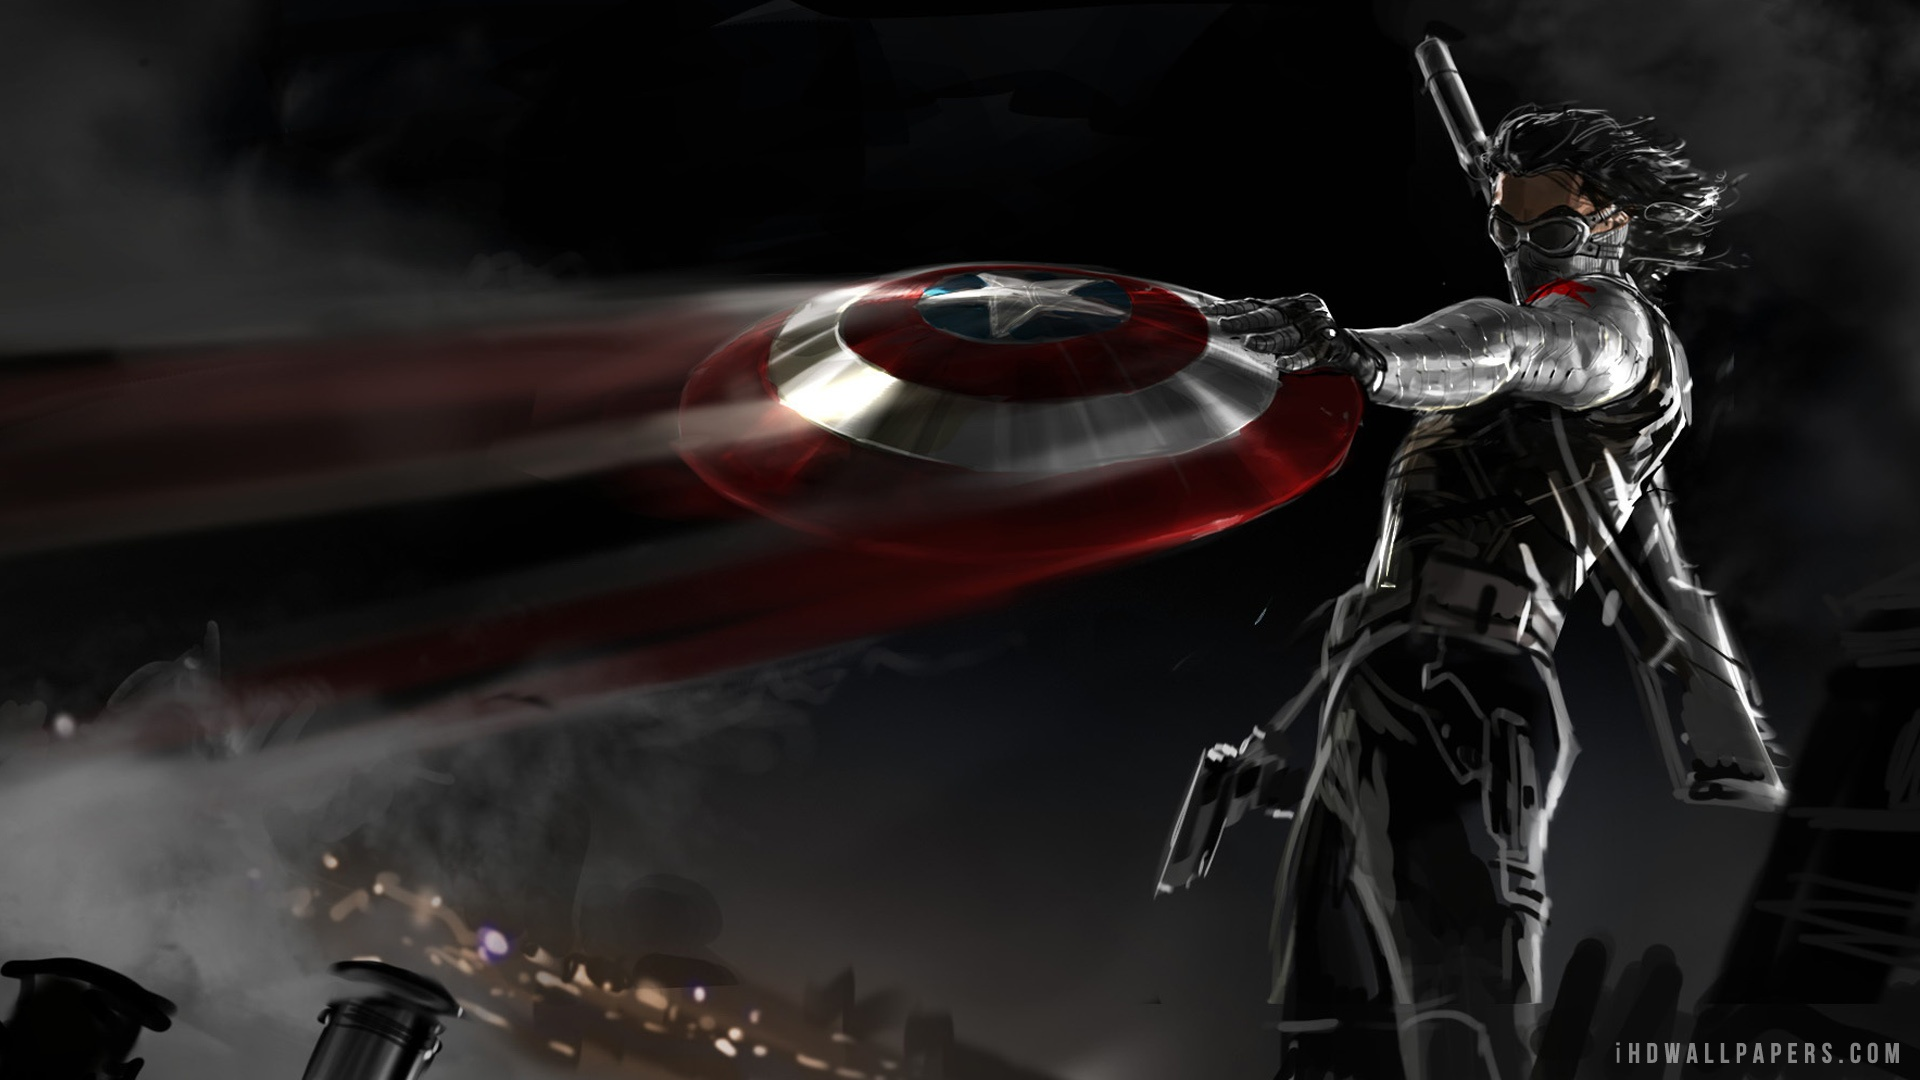 Captain America The Winter Soldier HD Wallpaper   iHD Wallpapers 1920x1080